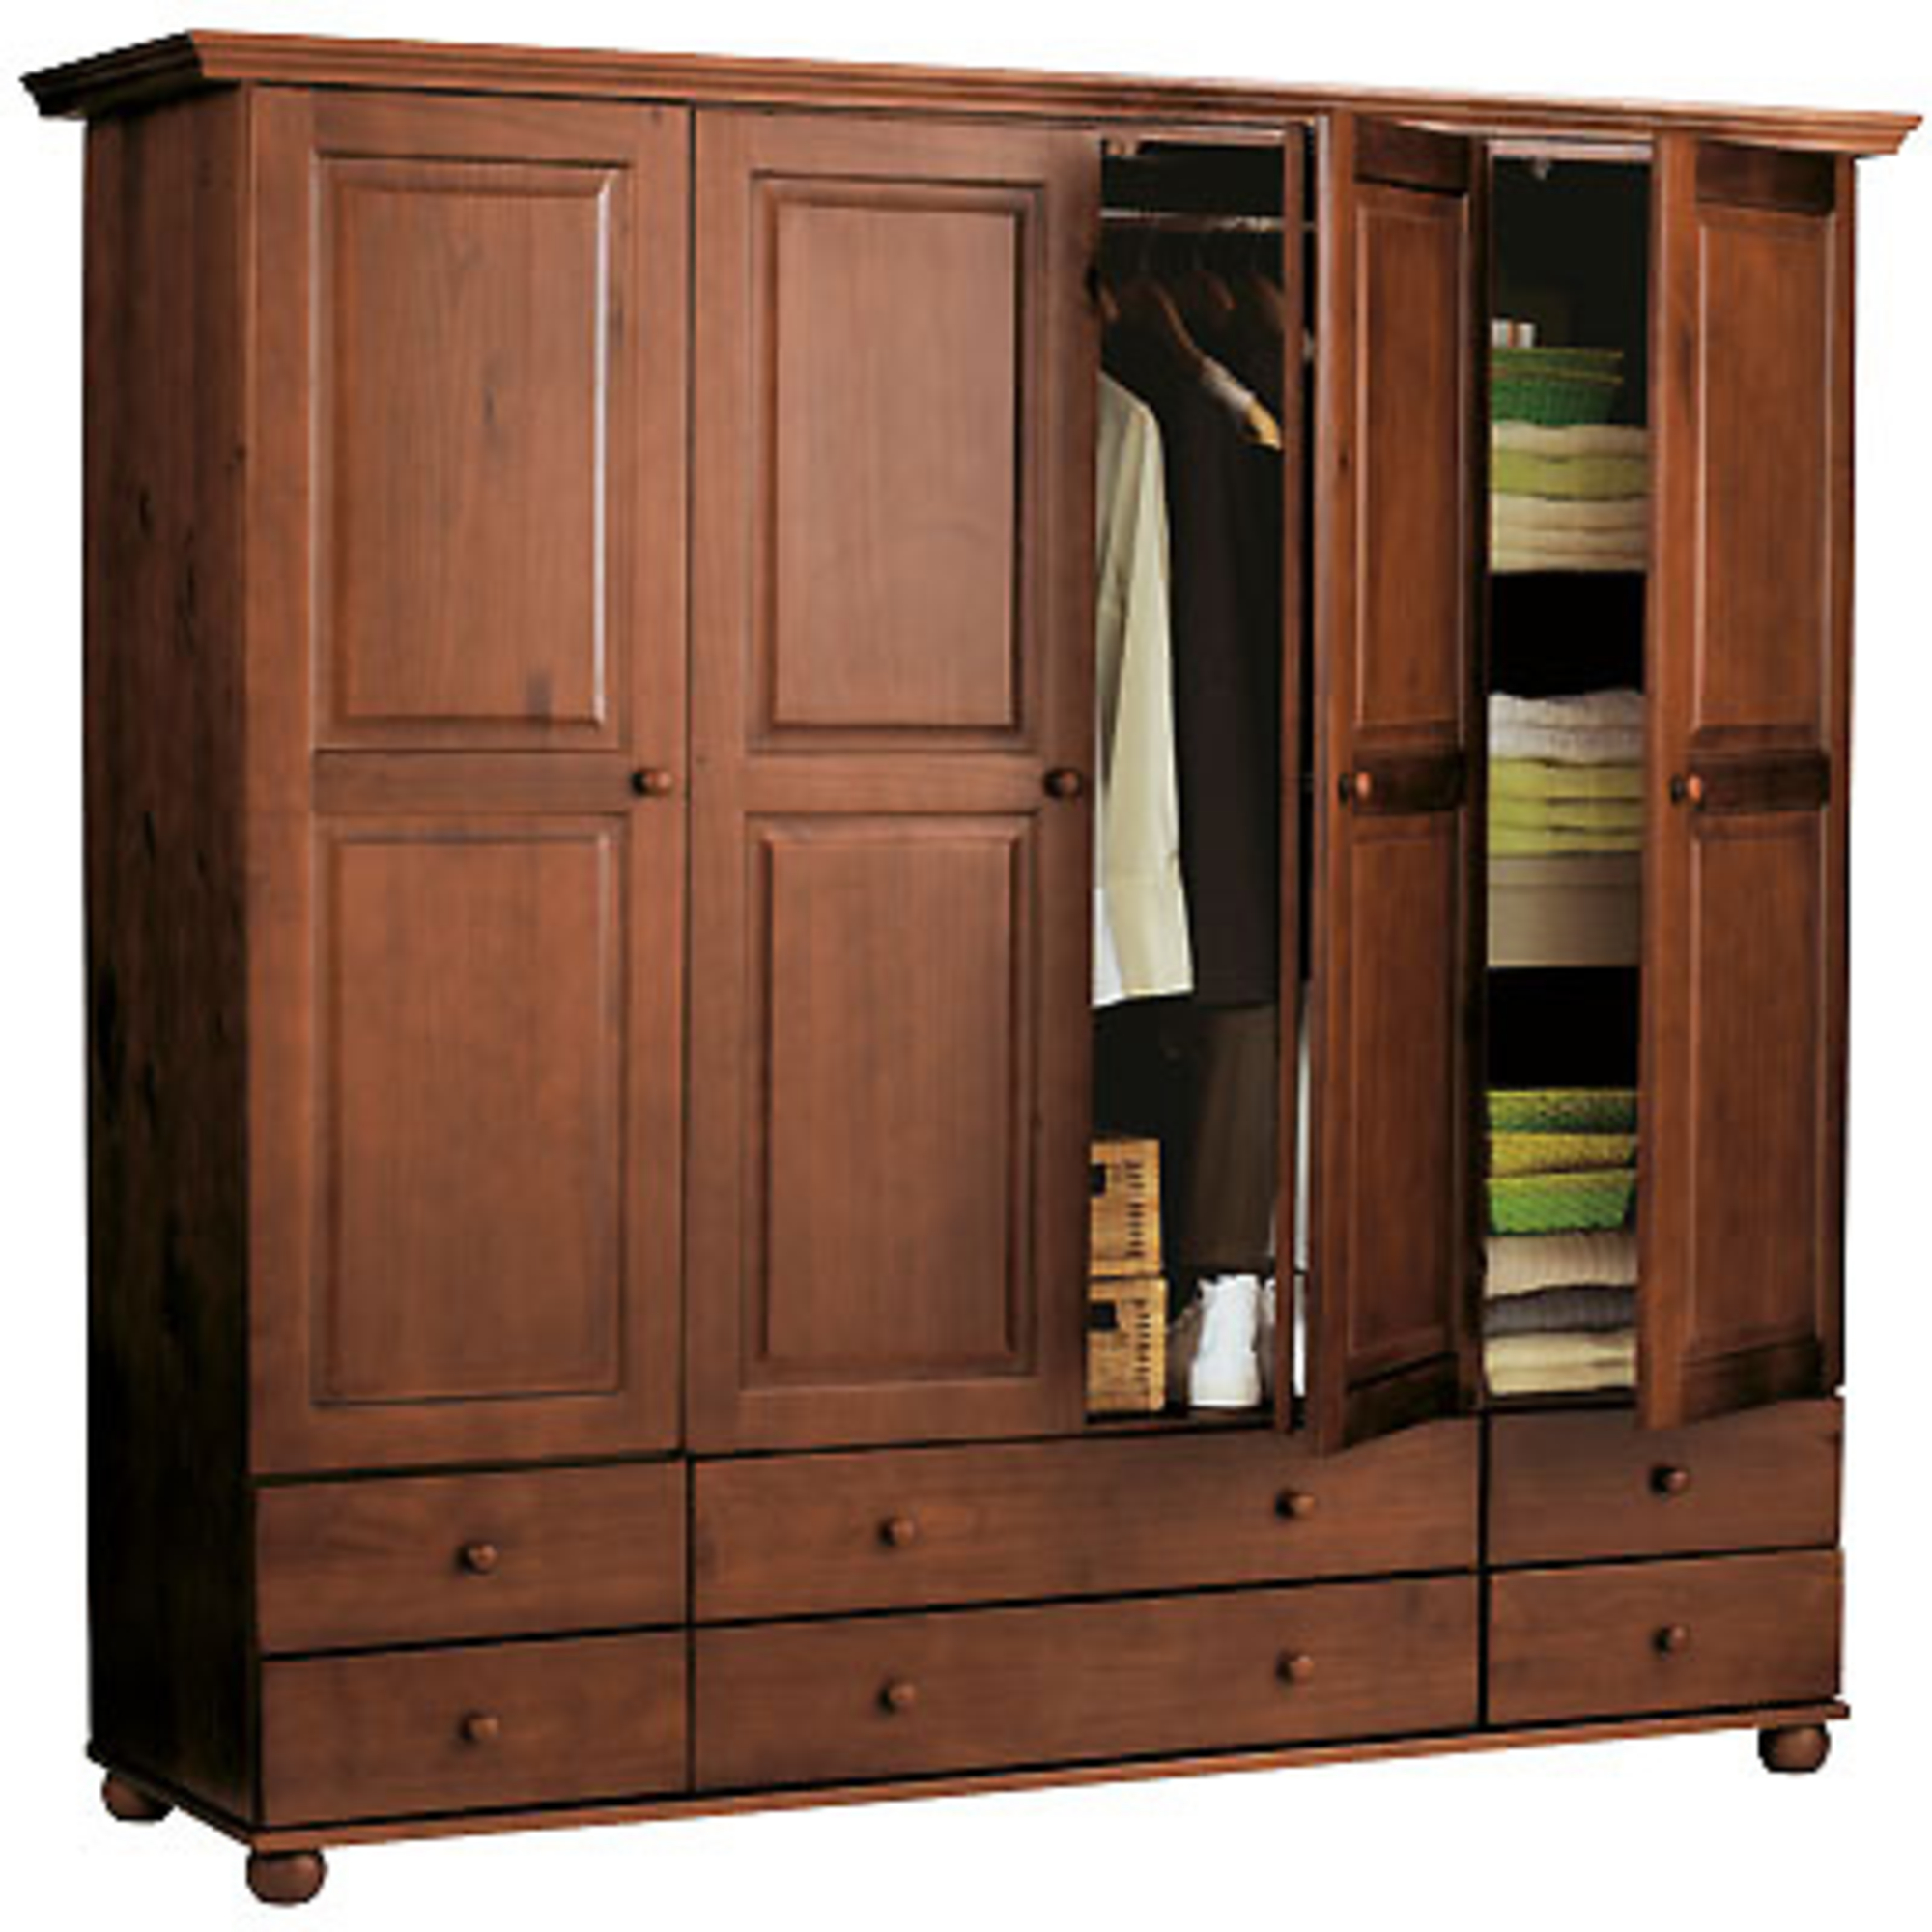 armoire 4 portes 6 tiroirs 1 2 penderie 1 2 ling re hauteur 180 cm annecy rustique. Black Bedroom Furniture Sets. Home Design Ideas